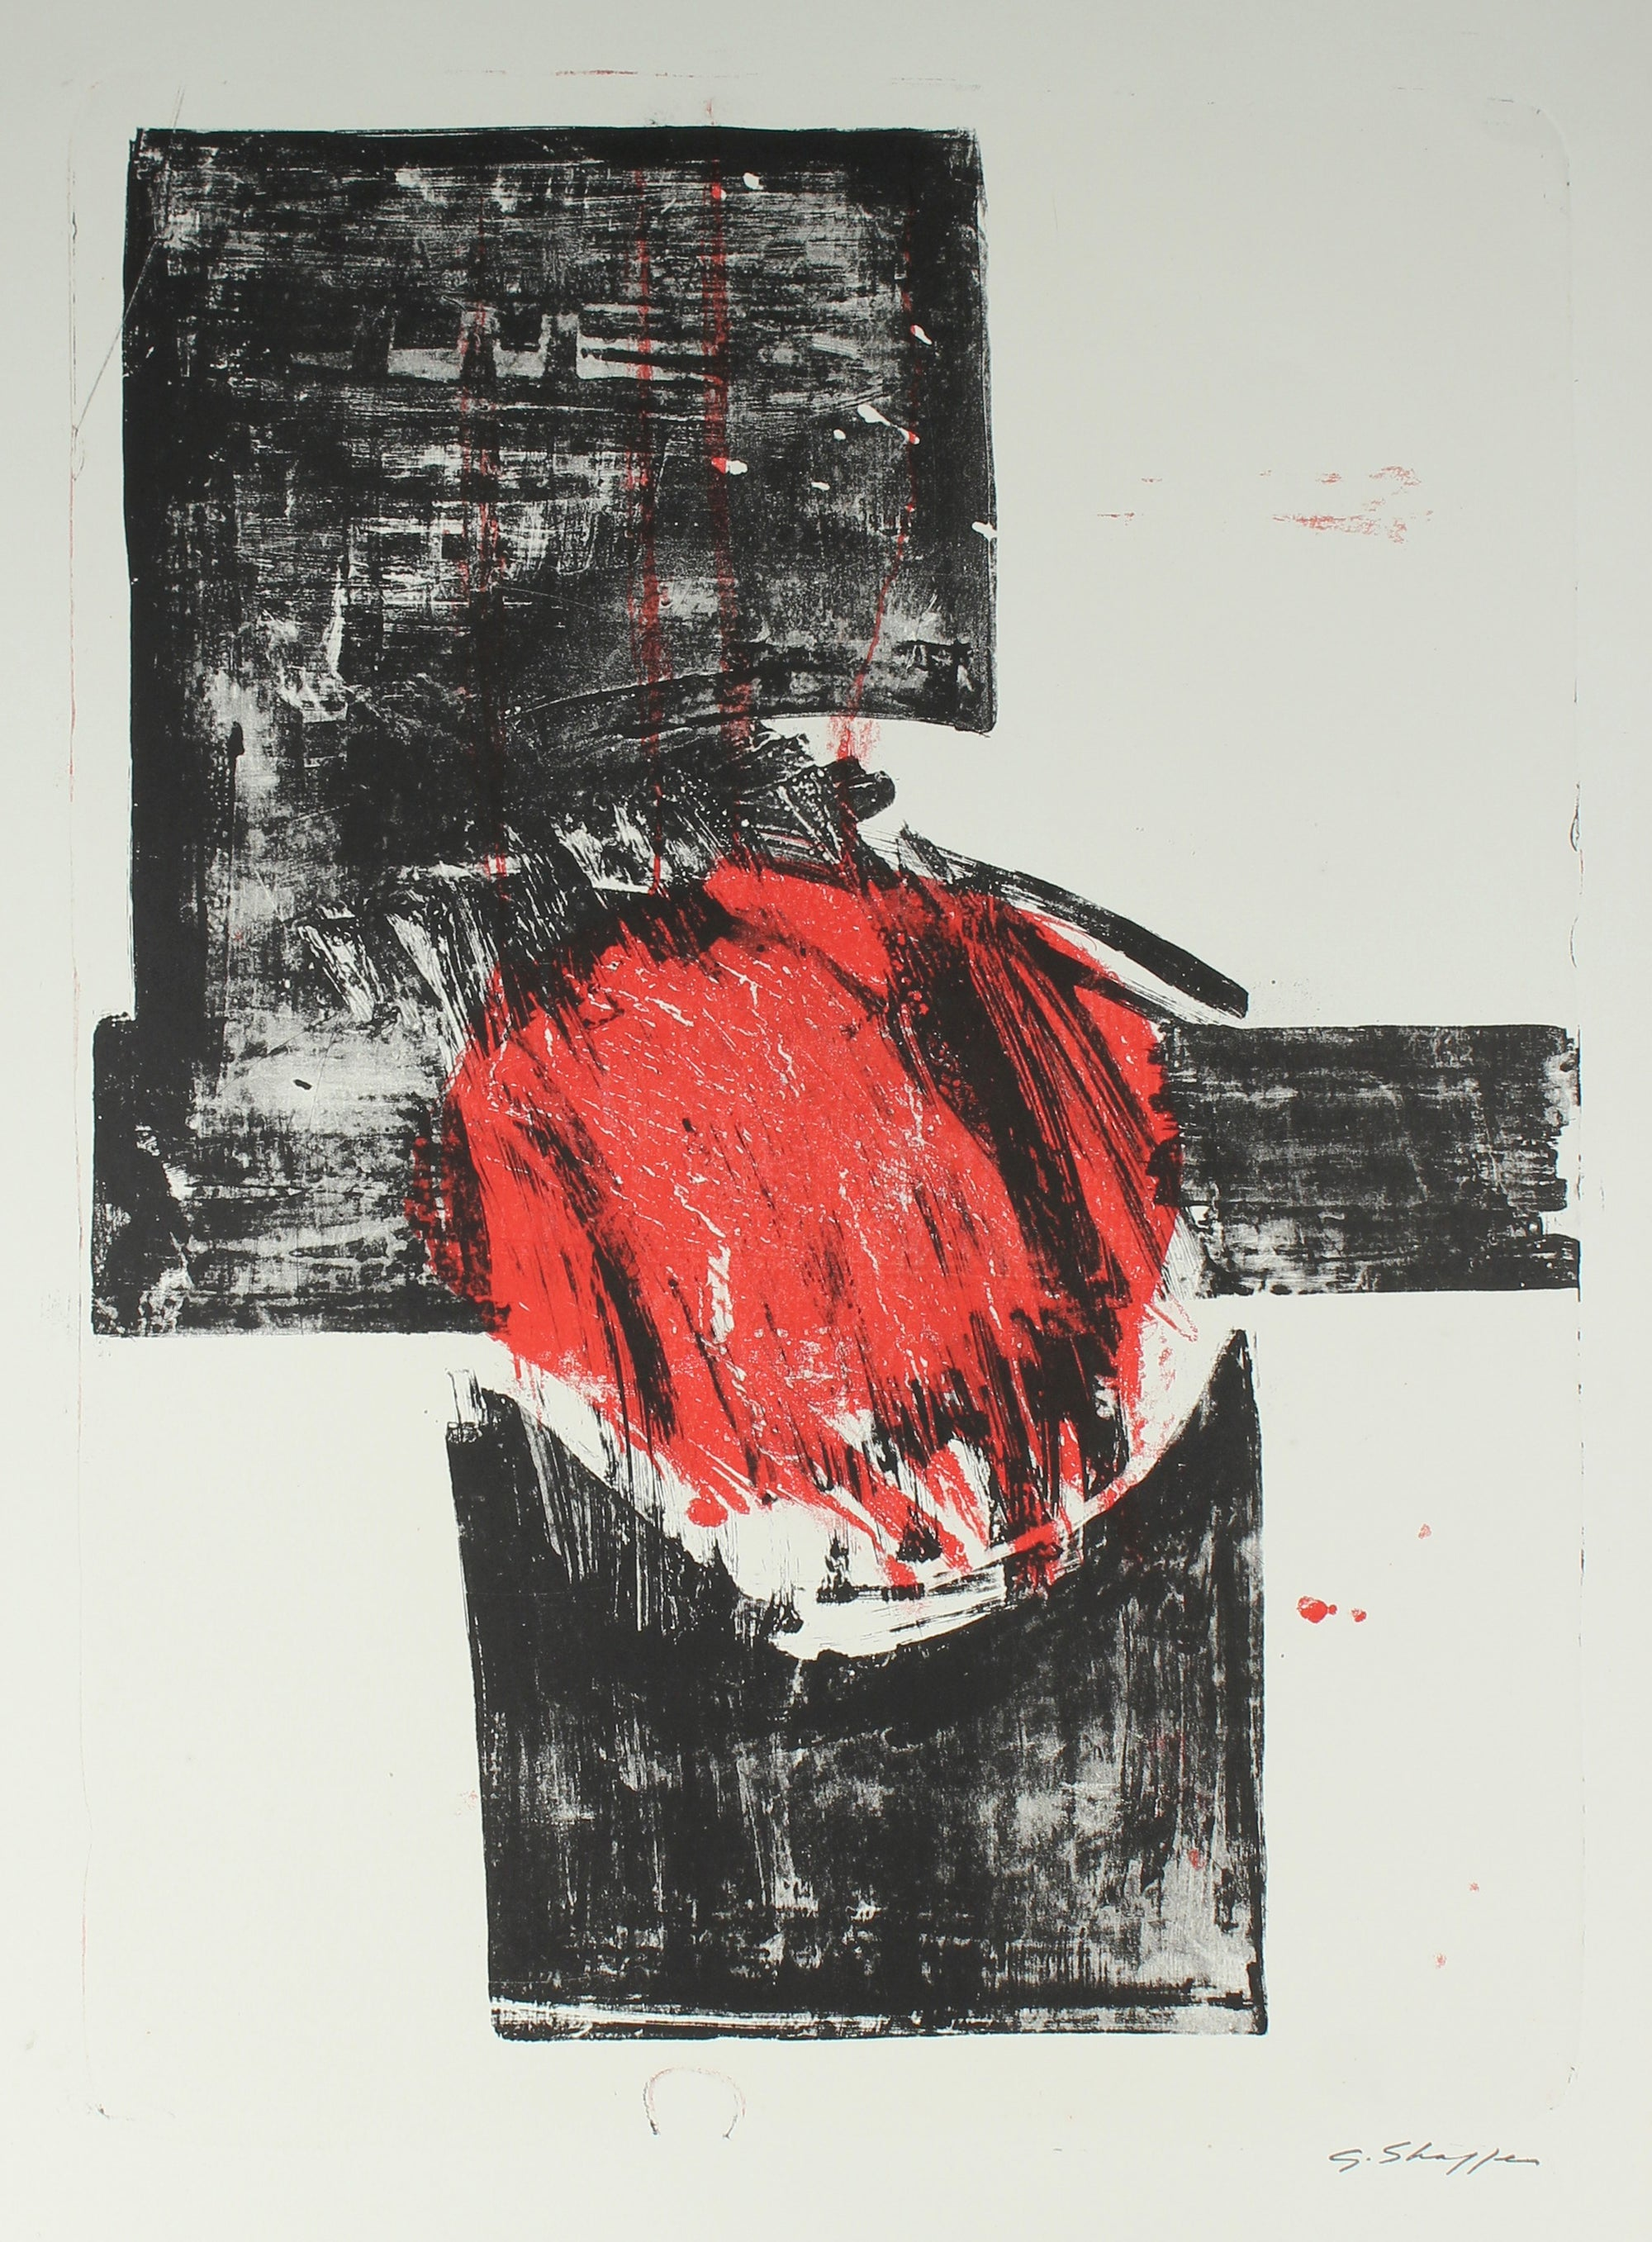 1965-66 Abstract Expressionist Red & Black Stone Lithograph <br><br>#6369